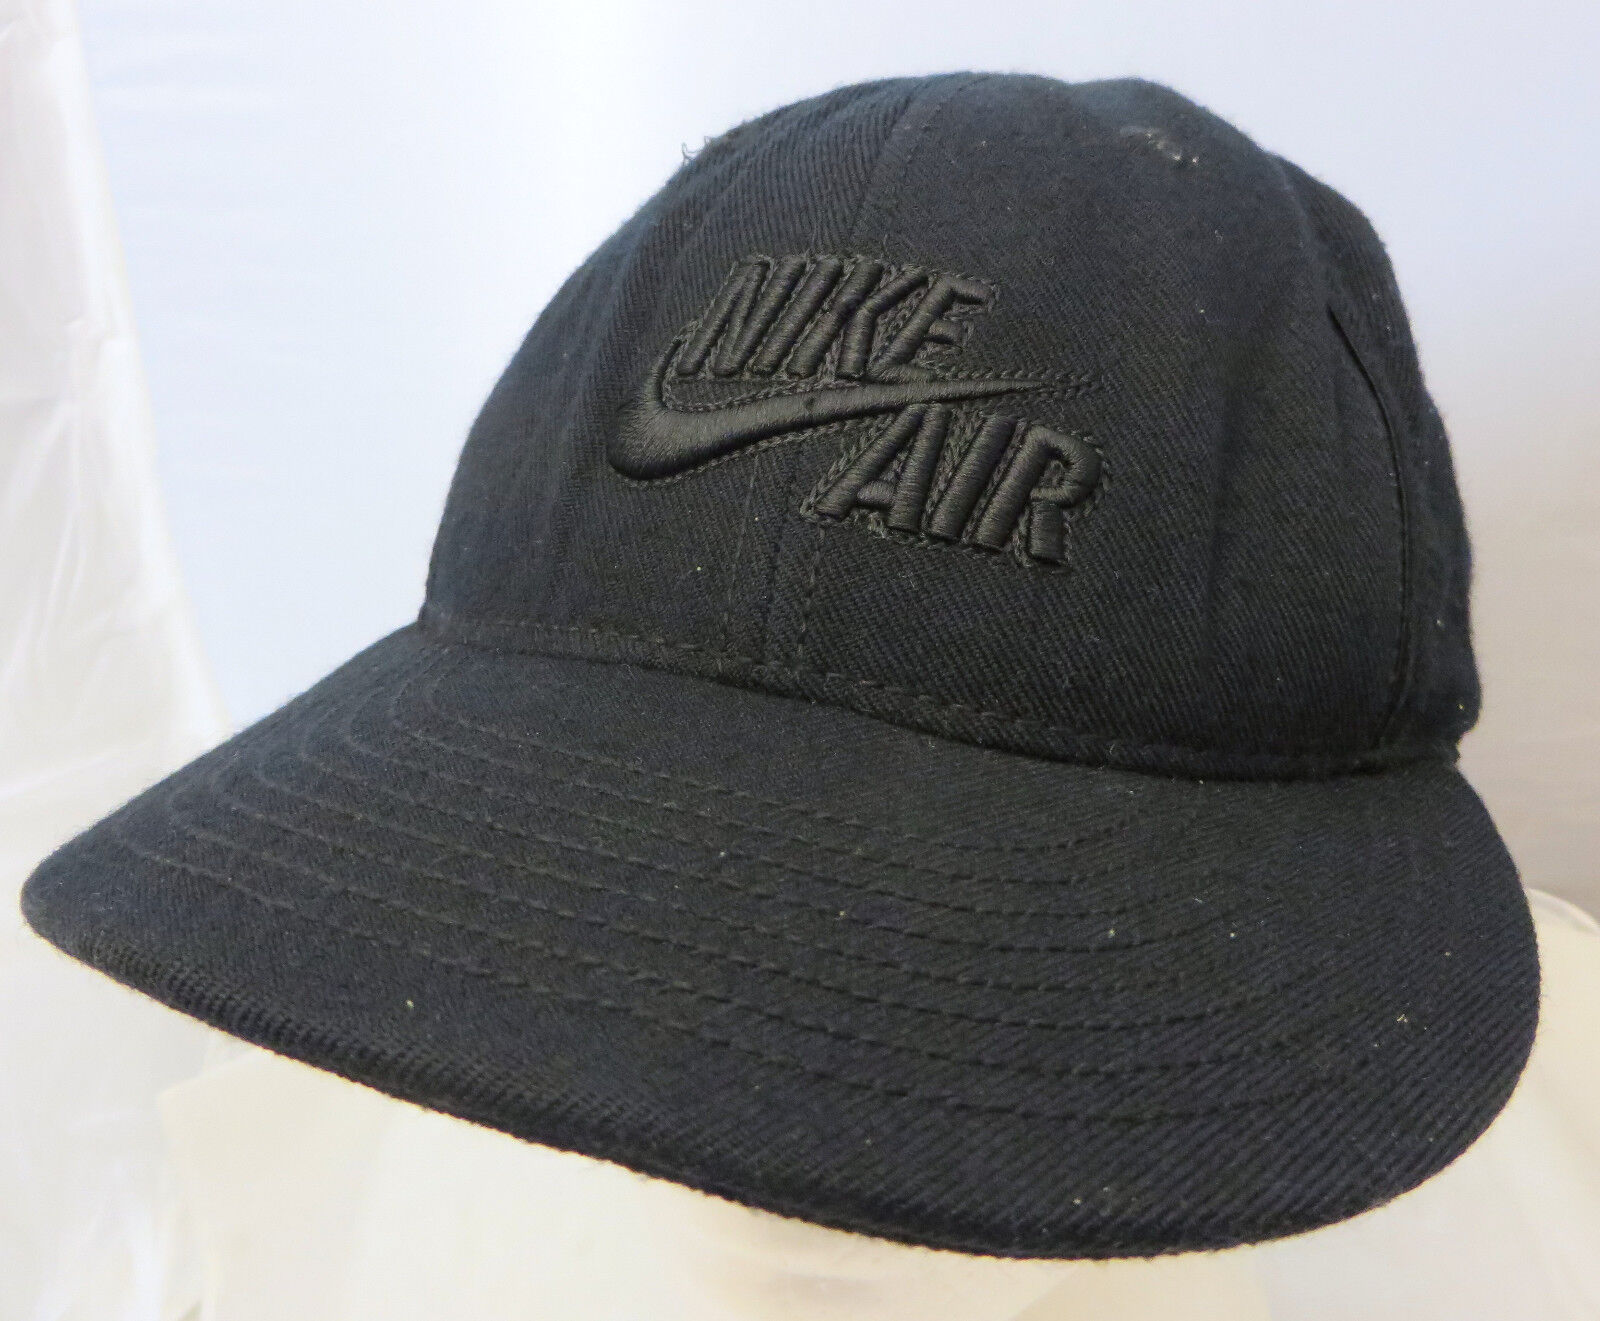 NIKE AIR hat  baseball  cap hat AIR size small 67/8-71/8 black 8b4aa3